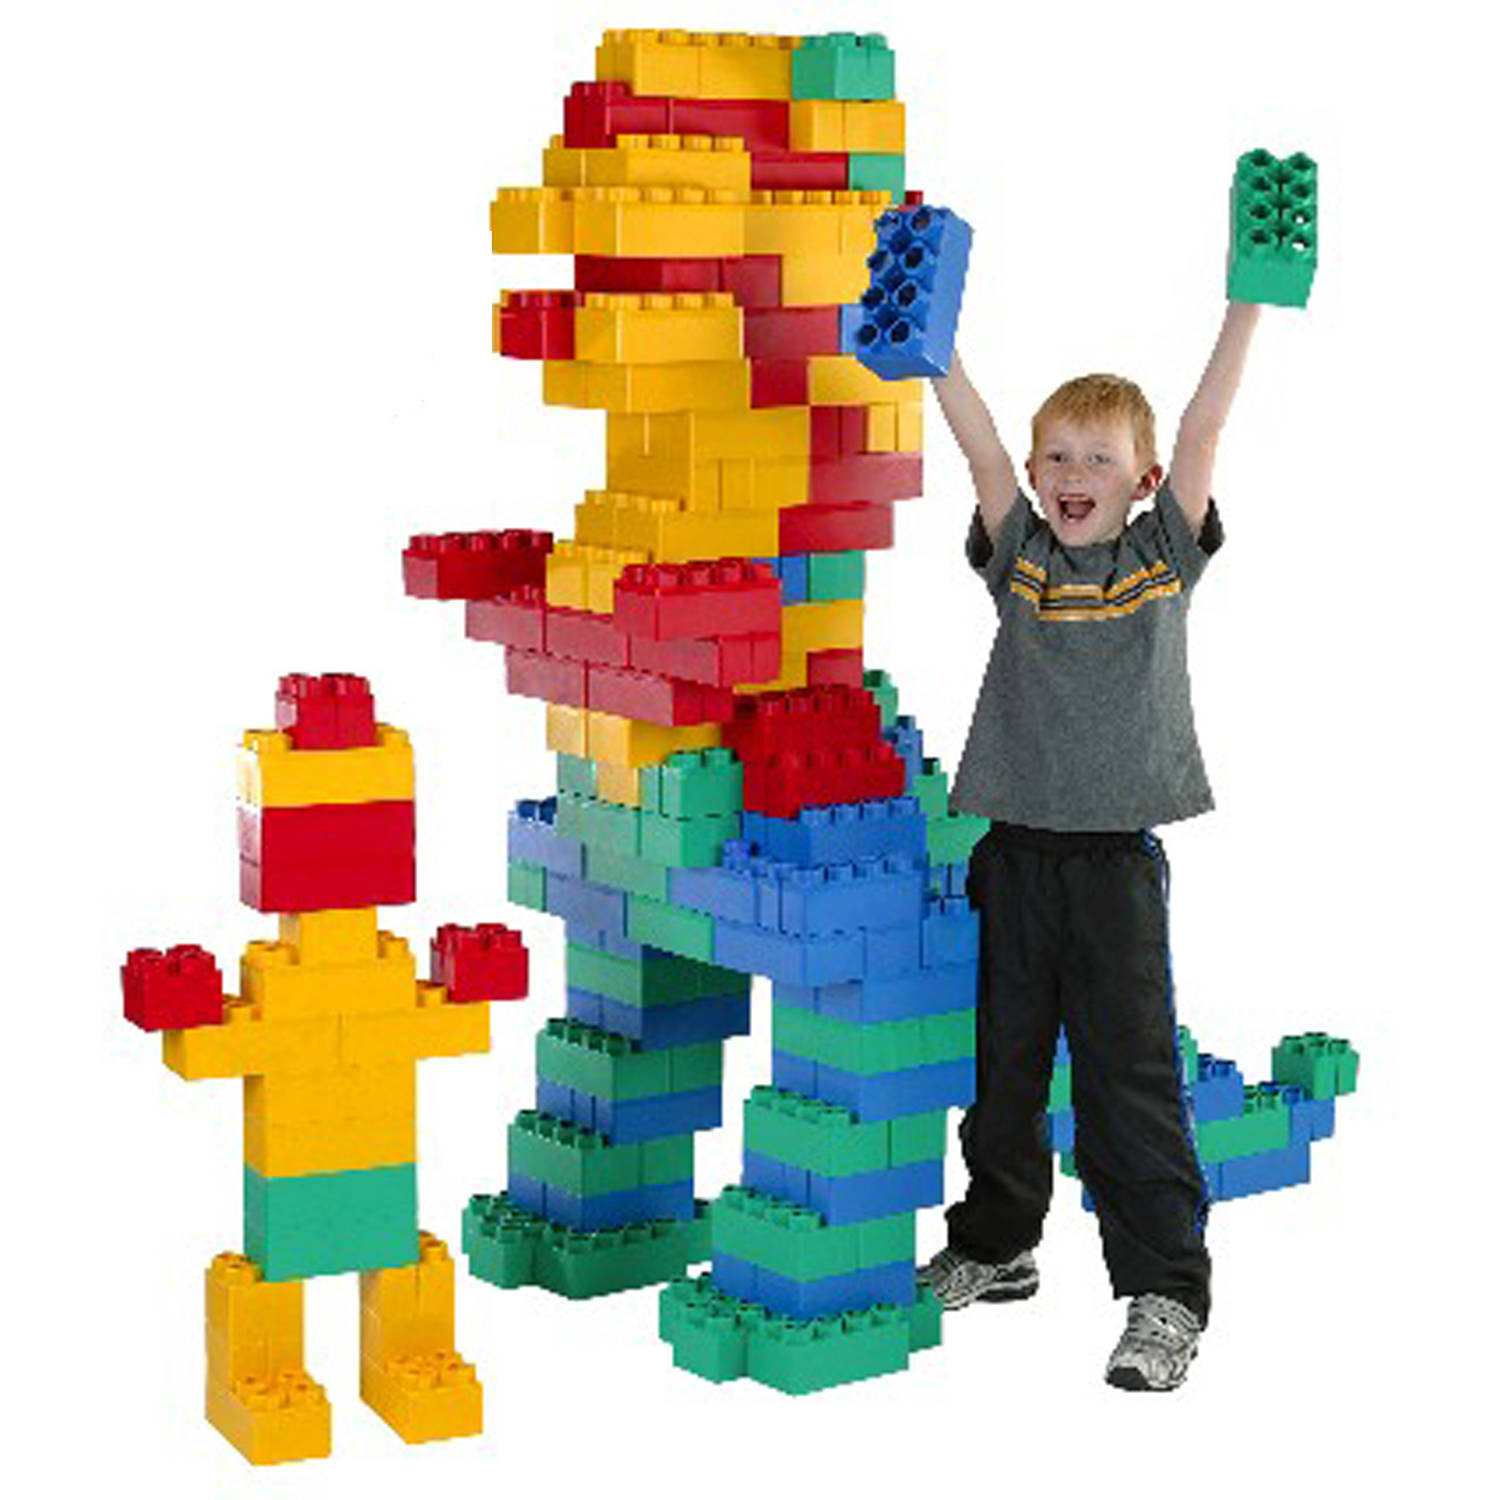 Kids Adventure Jumbo Blocks Jumbo Building Set, 192-Pieces by Kids Adventure